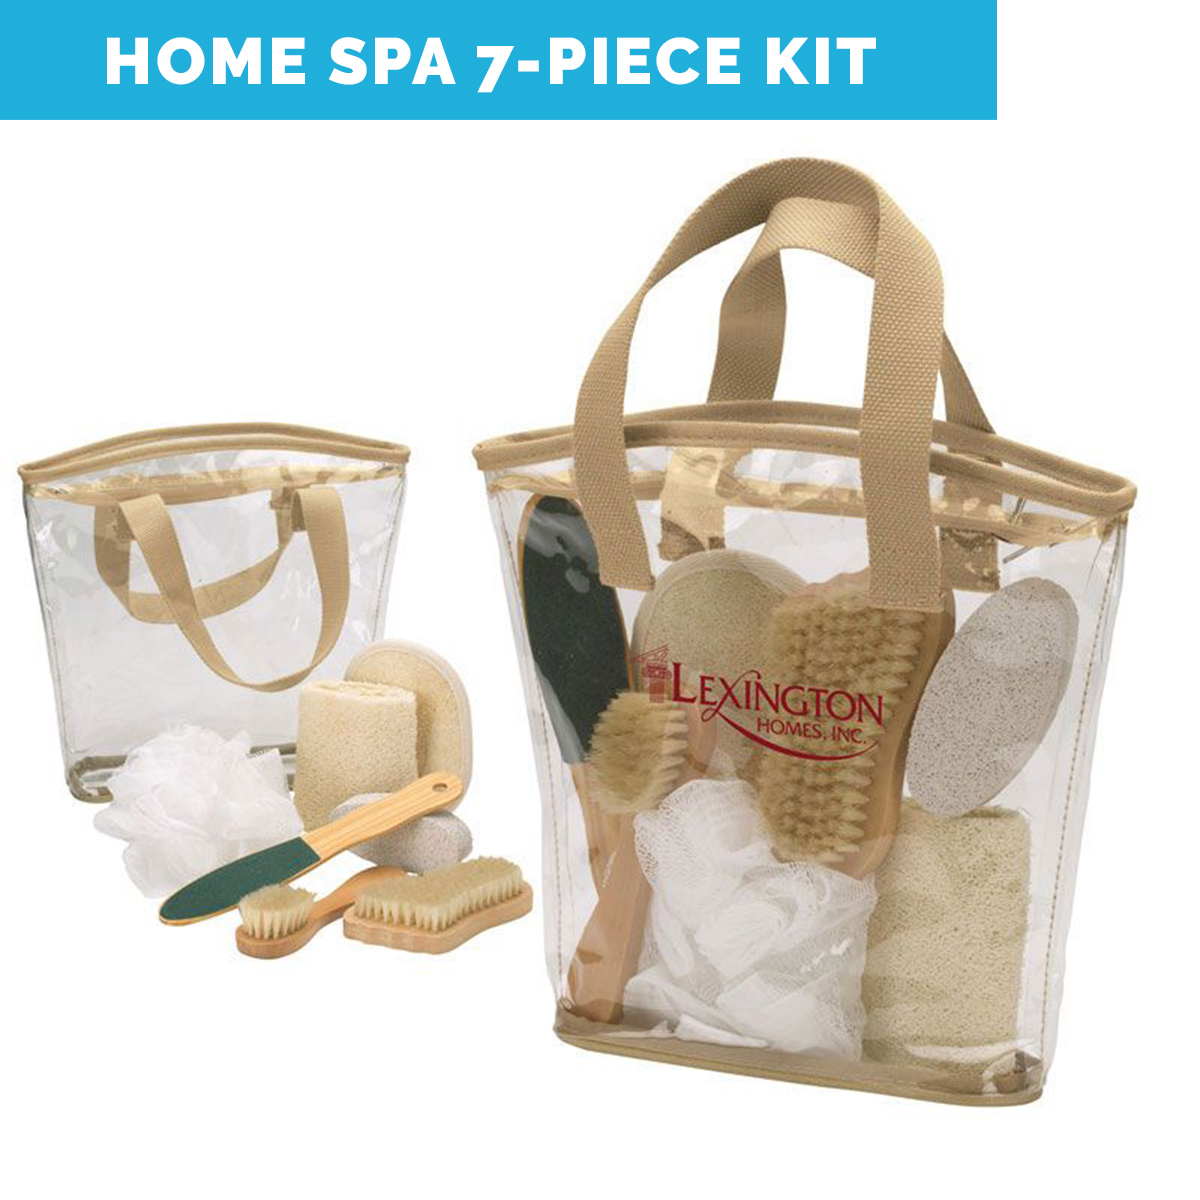 Work From Home Kits-custom branded spa relaxation kit